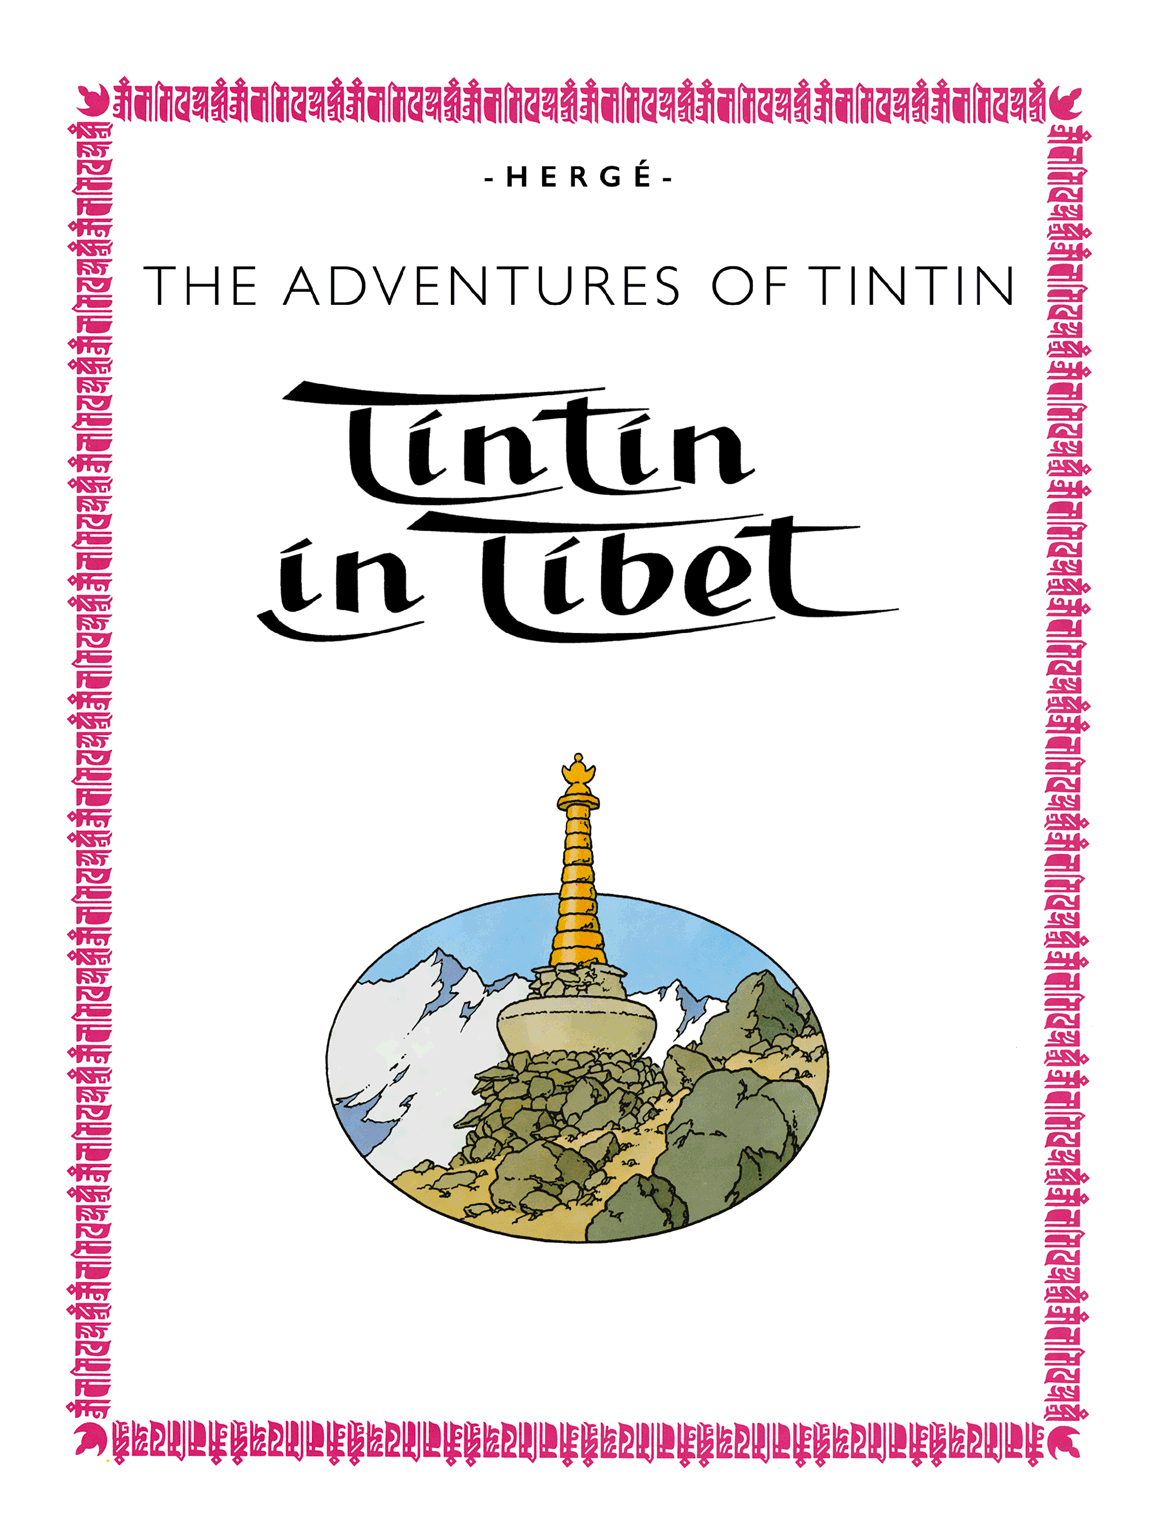 Tintin in Tibet - title page